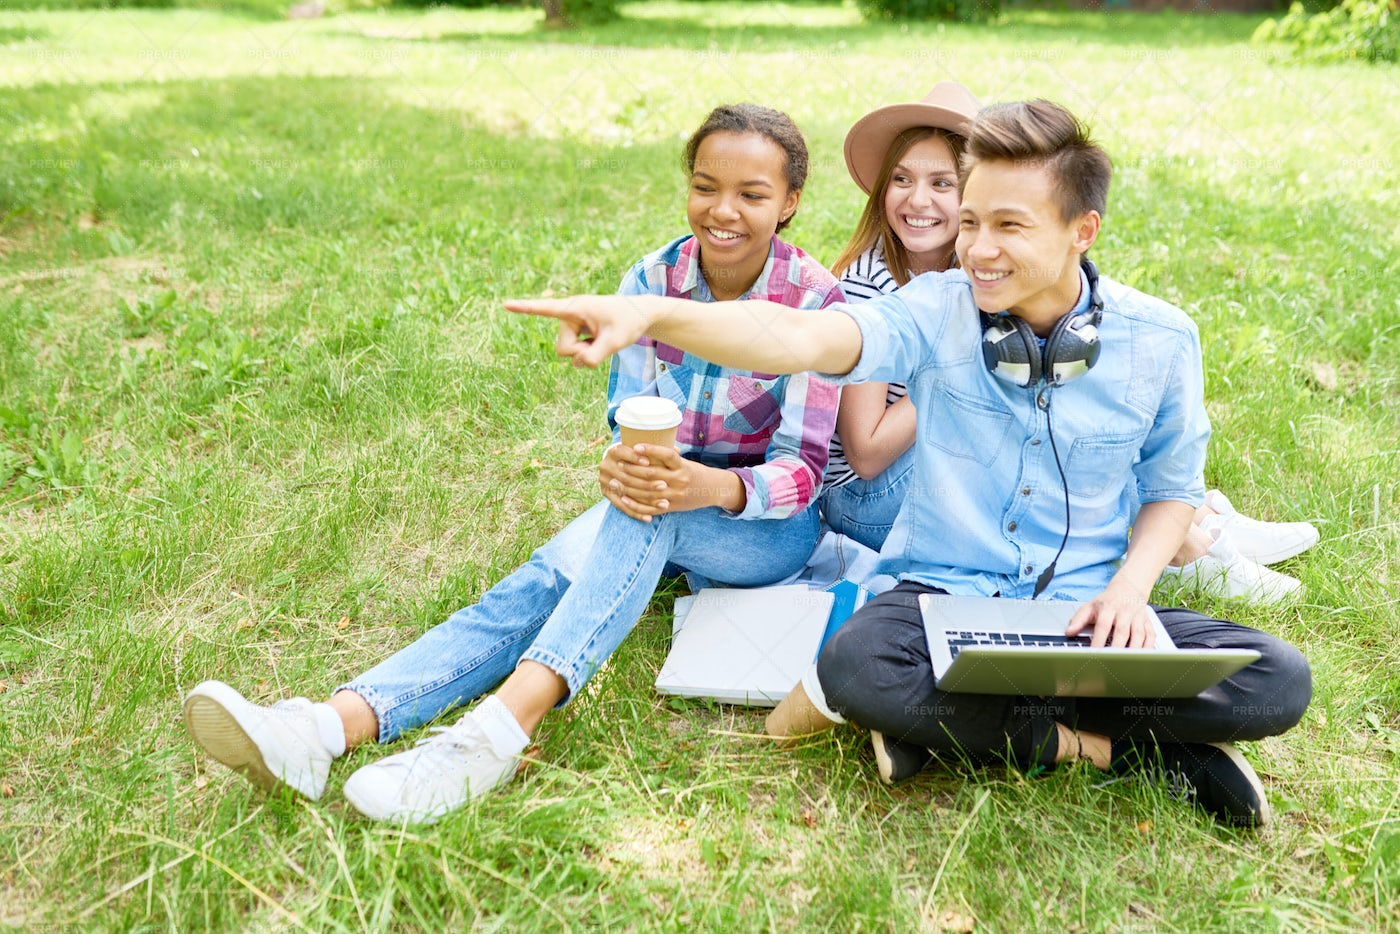 Happy Students  On Green  Lawn: Stock Photos